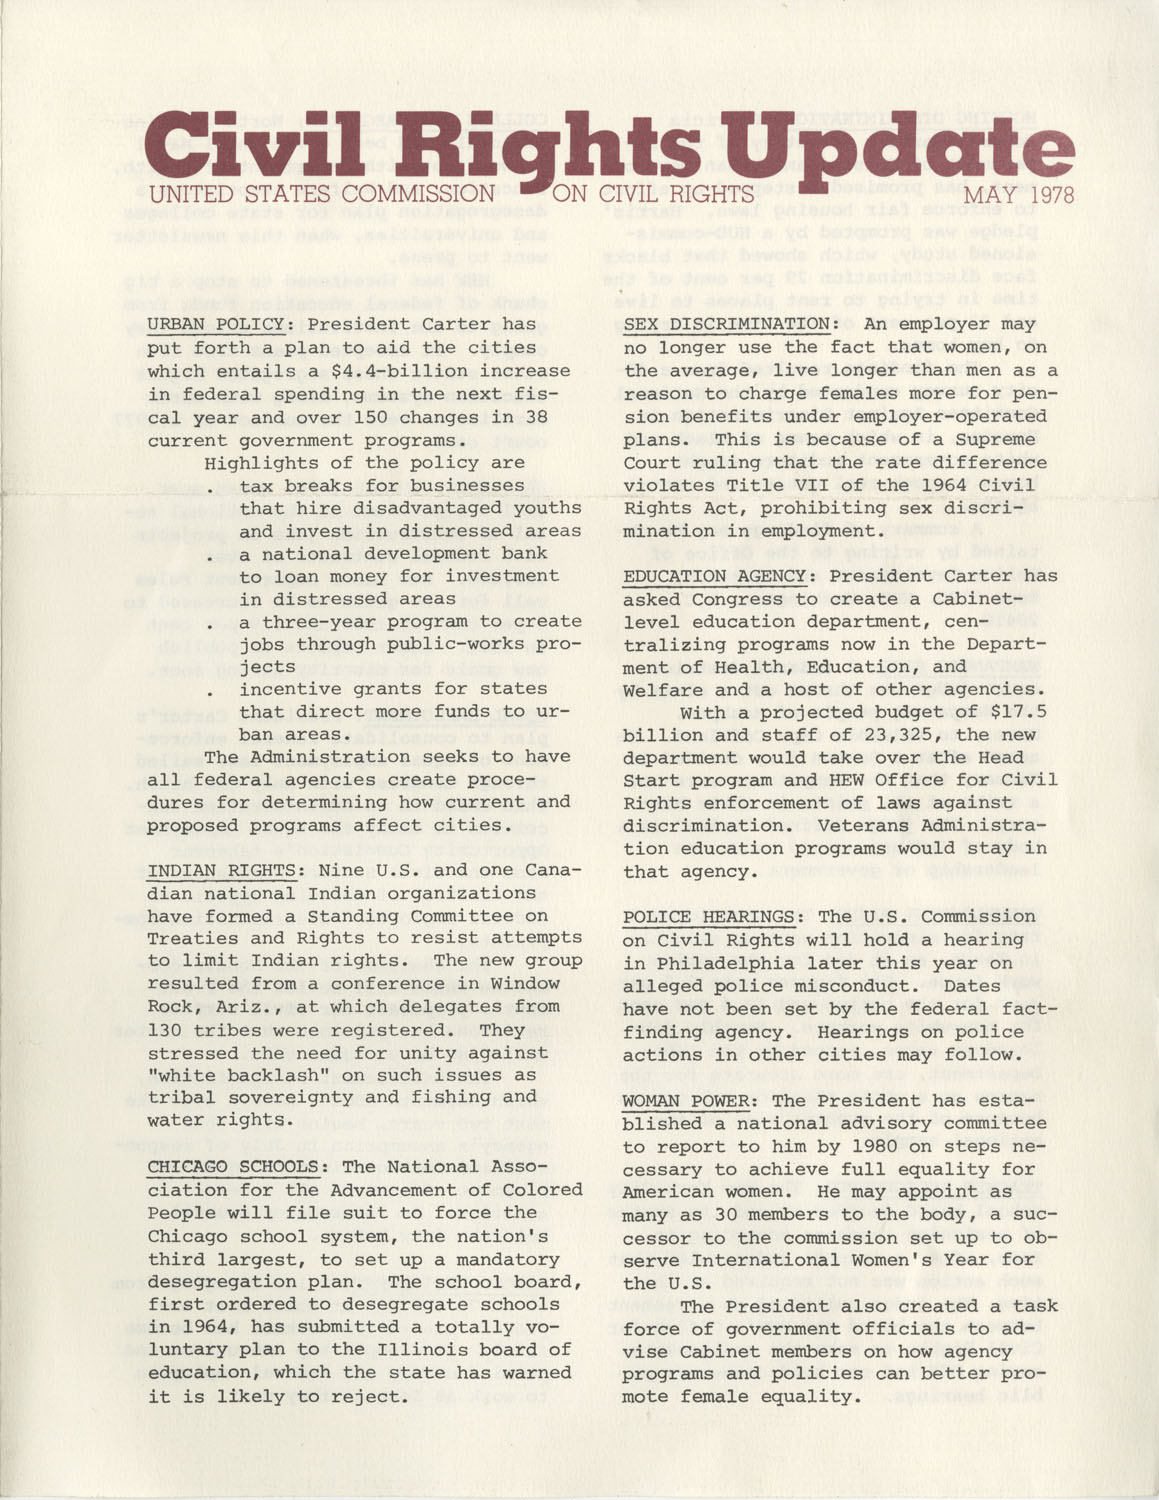 Civil Rights Update, May 1978